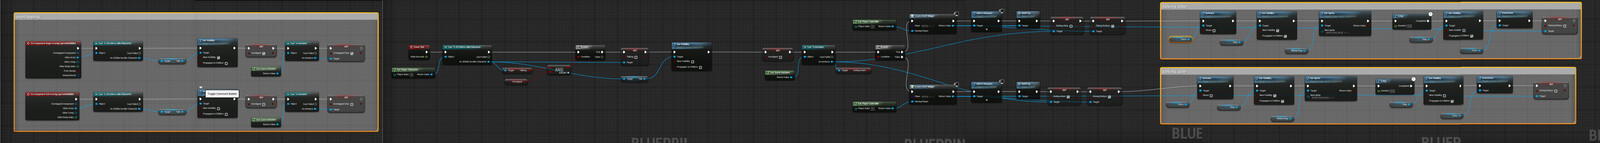 This is the actor blueprint. Controls the denizen's functions and variables.